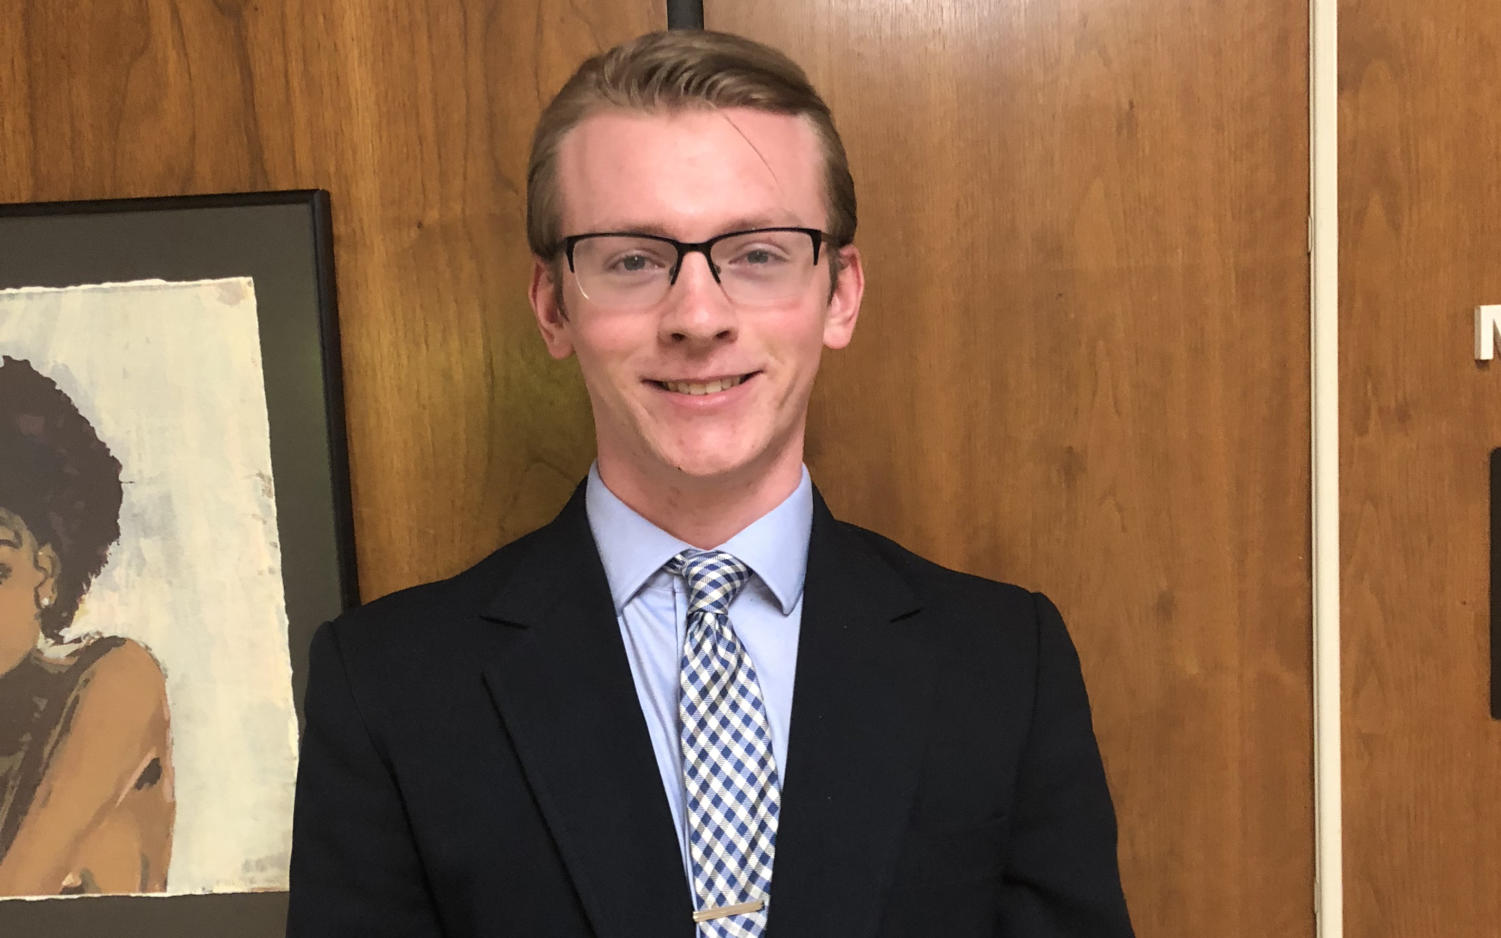 During Tuesday's meeting, members of the Student Government Association elected Joe Reinert as Speaker Pro Tempore for the 50th legislative session.